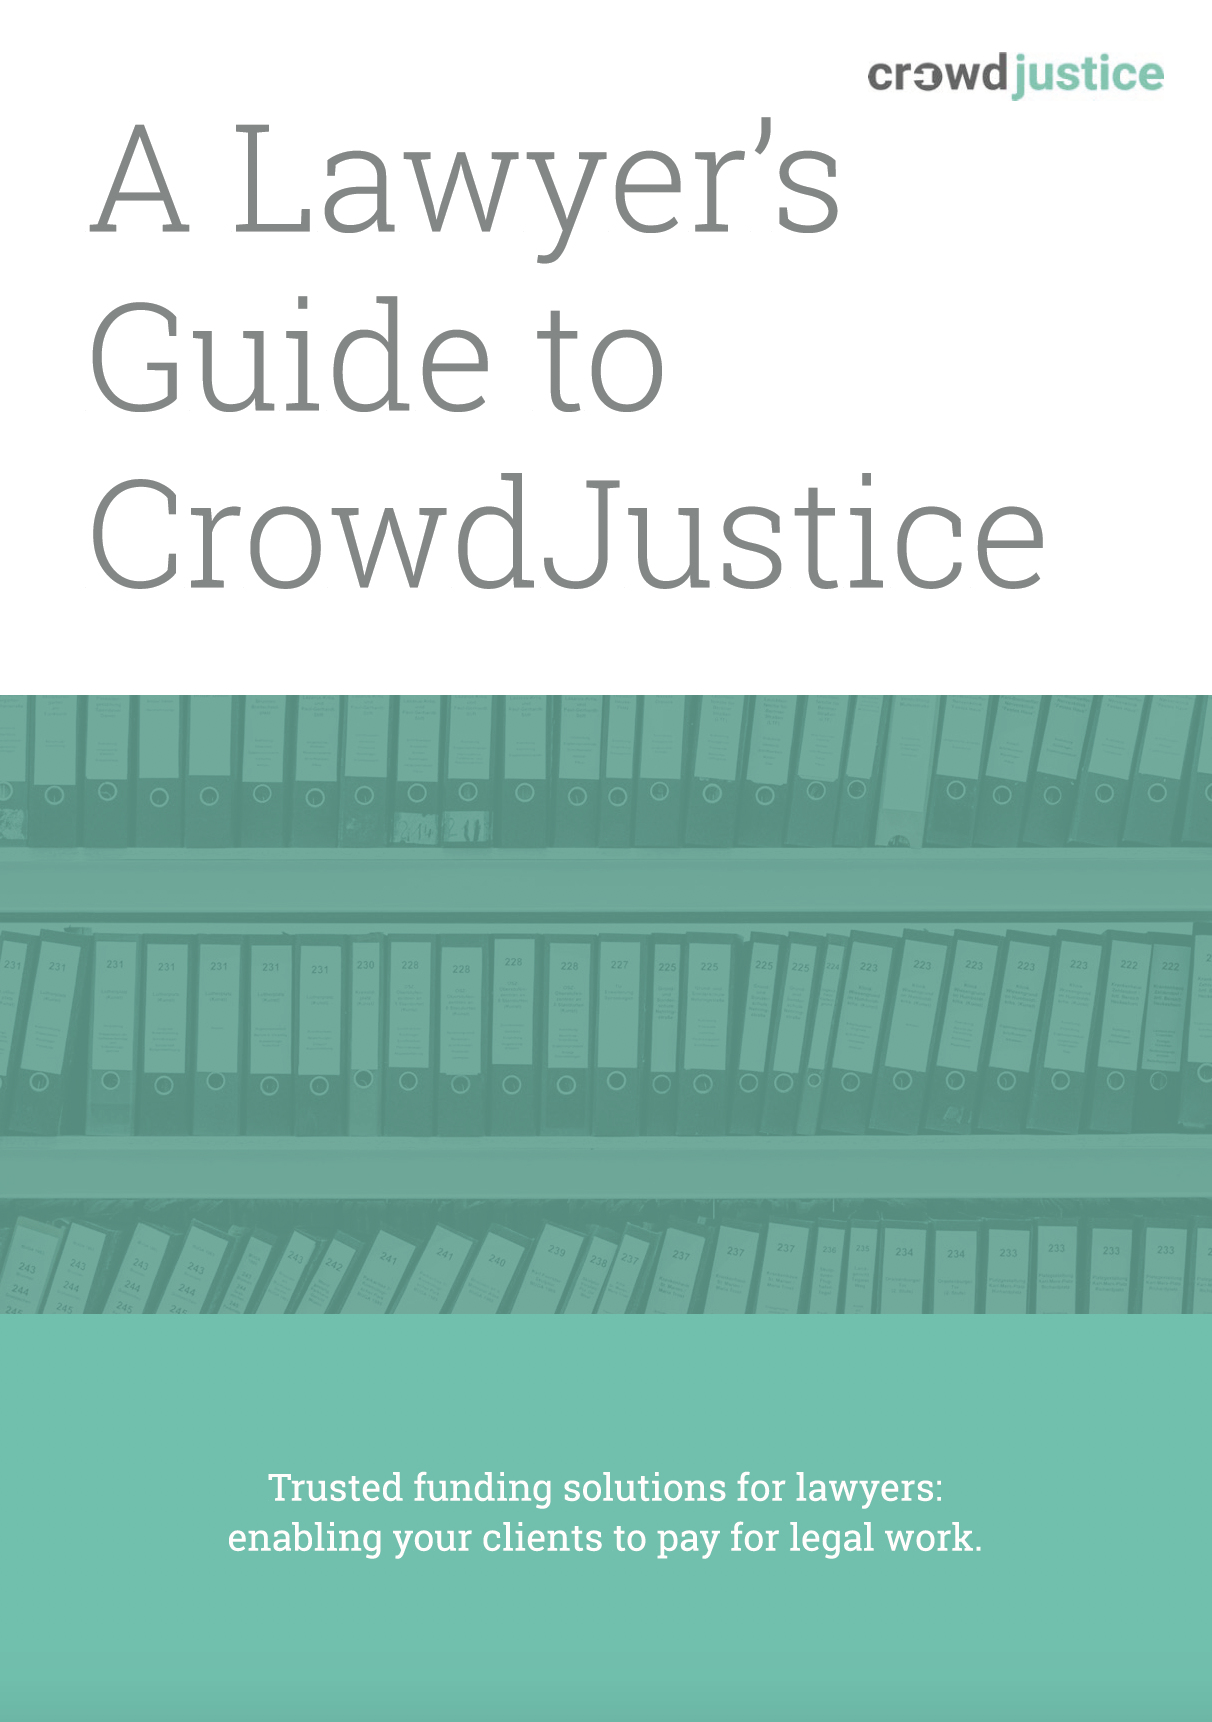 Download our guide to CrowdJustice for lawyers